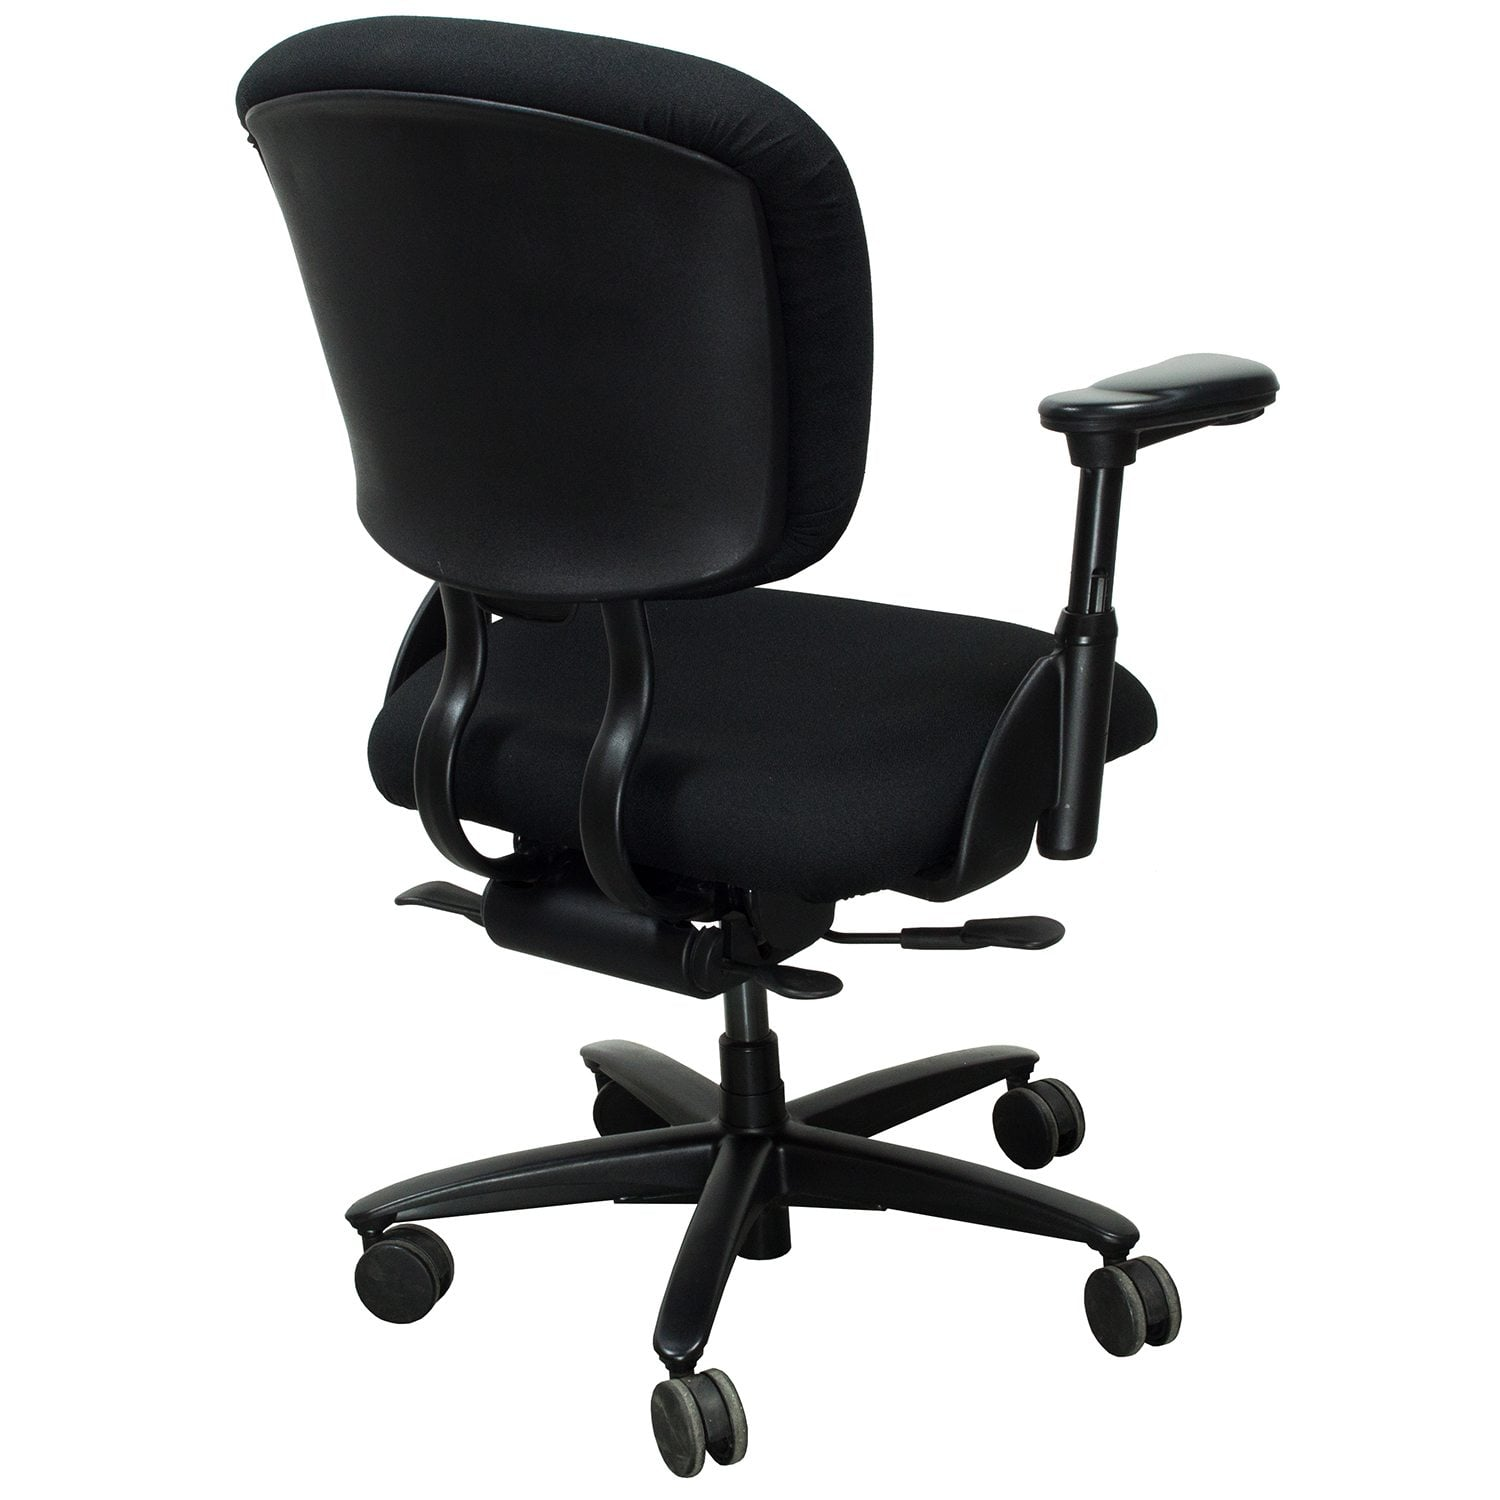 xl desk chair jazzy power chairs haworth improv used task black national office